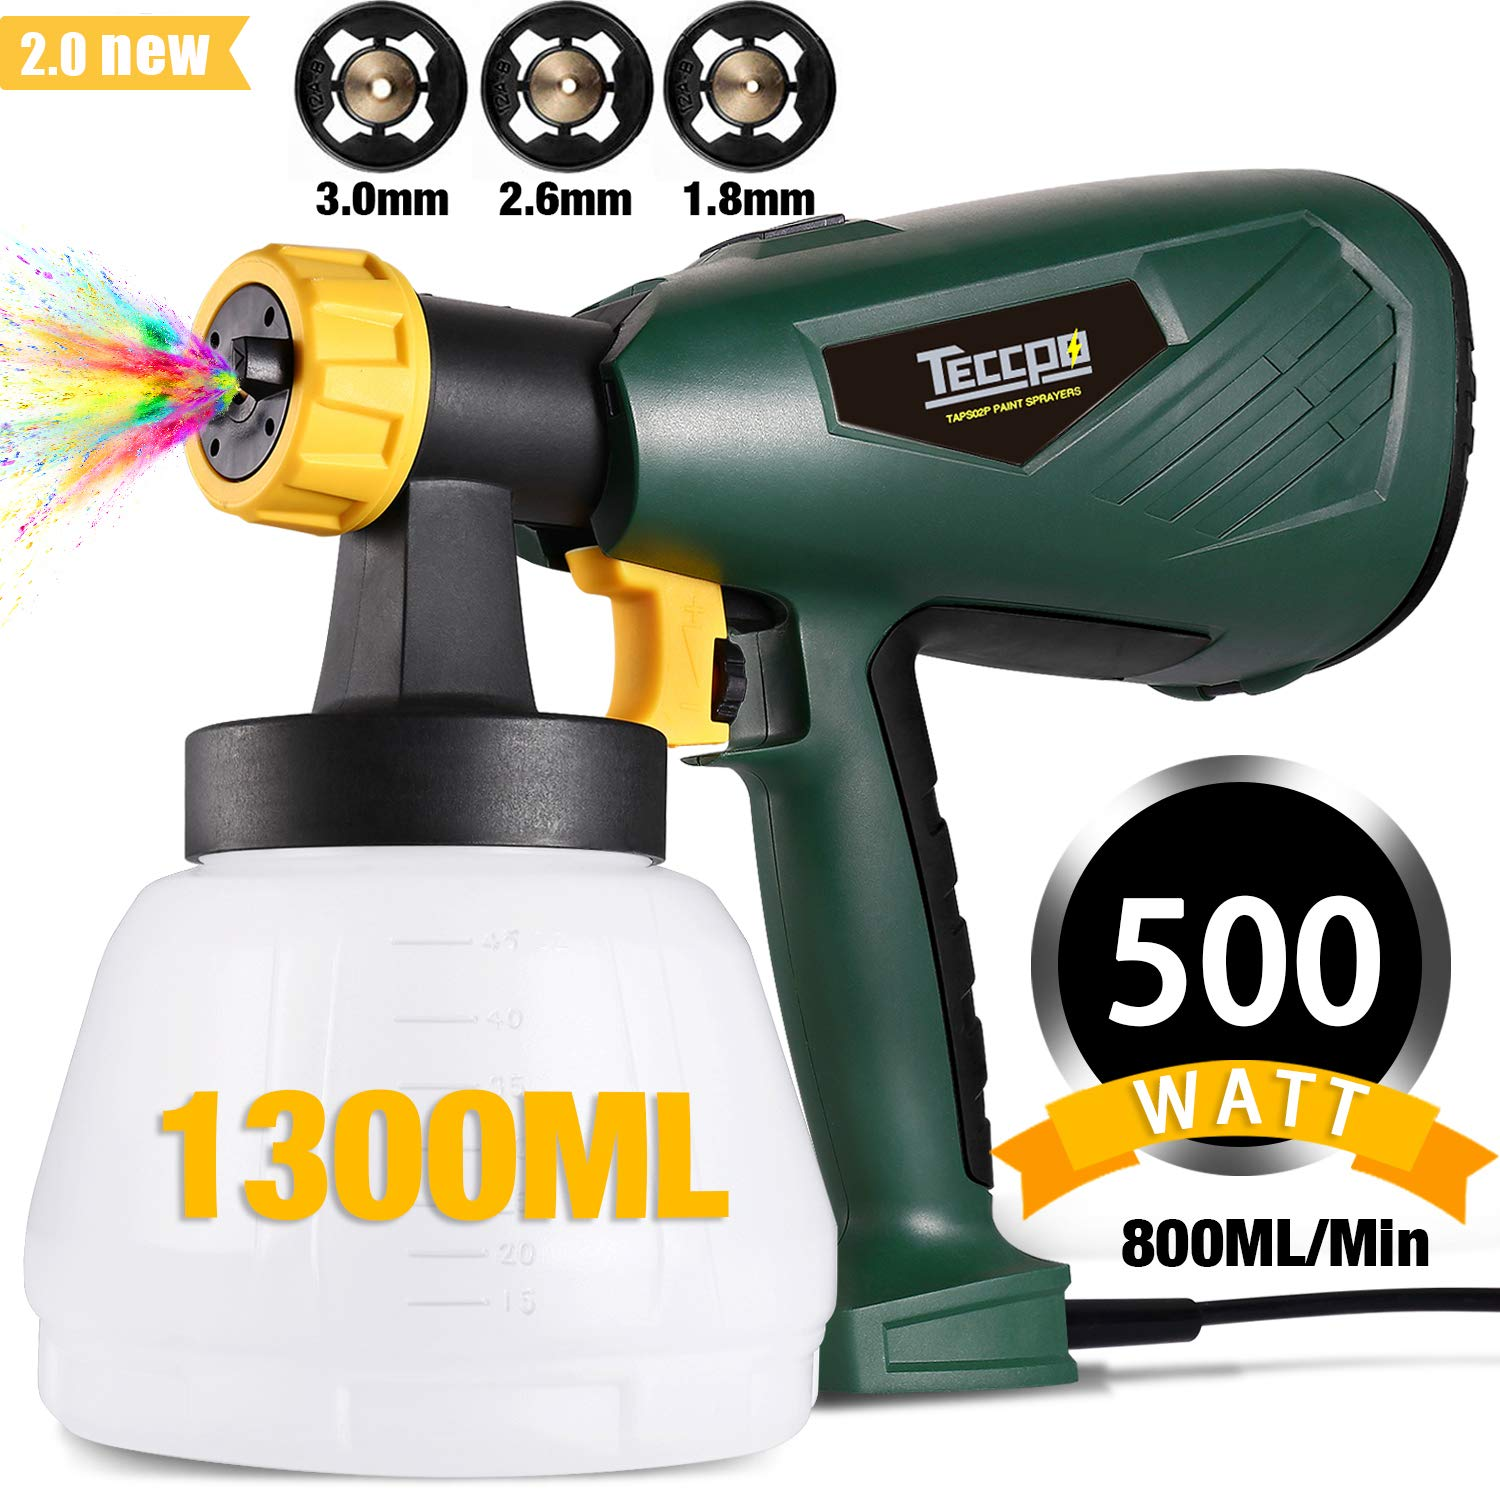 Paint Sprayer, TECCPO 500 Watts 800ml/min HVLP Electric Spray Gun with 1300ml Detachable Container, 3 Copper Nozzles & 3 Spray Patterns, Adjustable Volume Dial for Home Decoration, Limited Time Deal by TECCPO